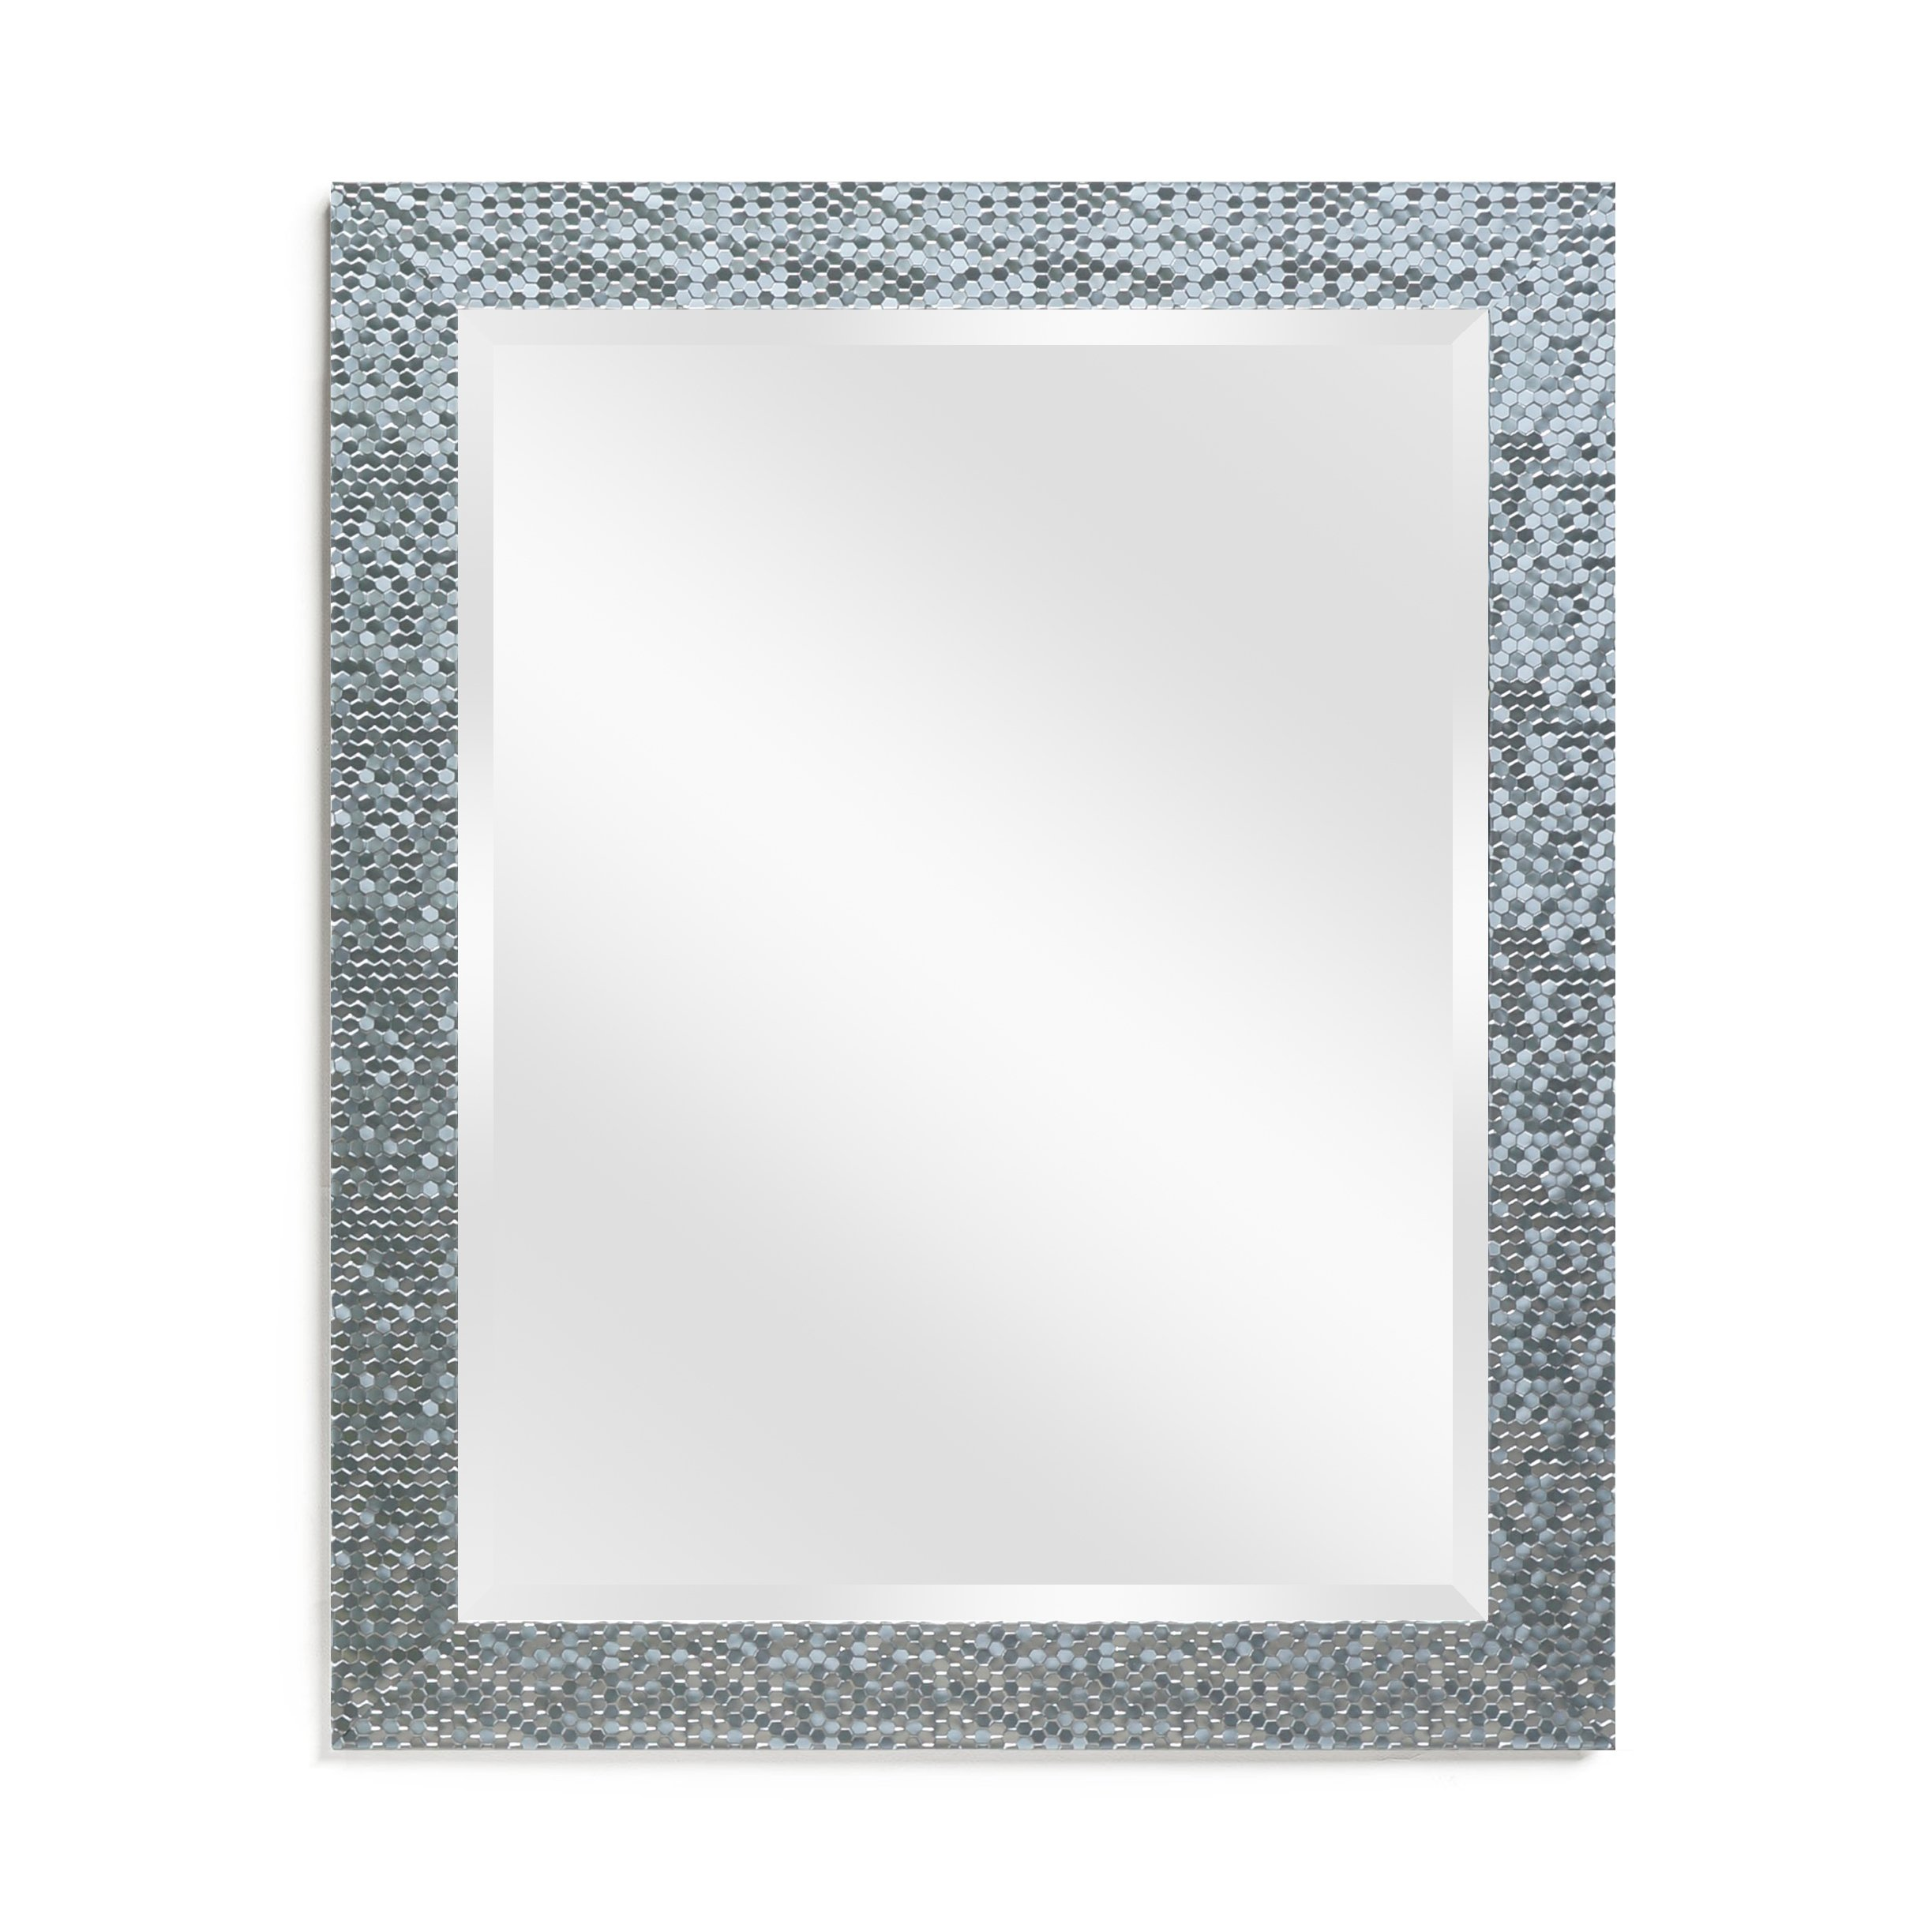 Best framed mirrors for bathroom | Amazon.com